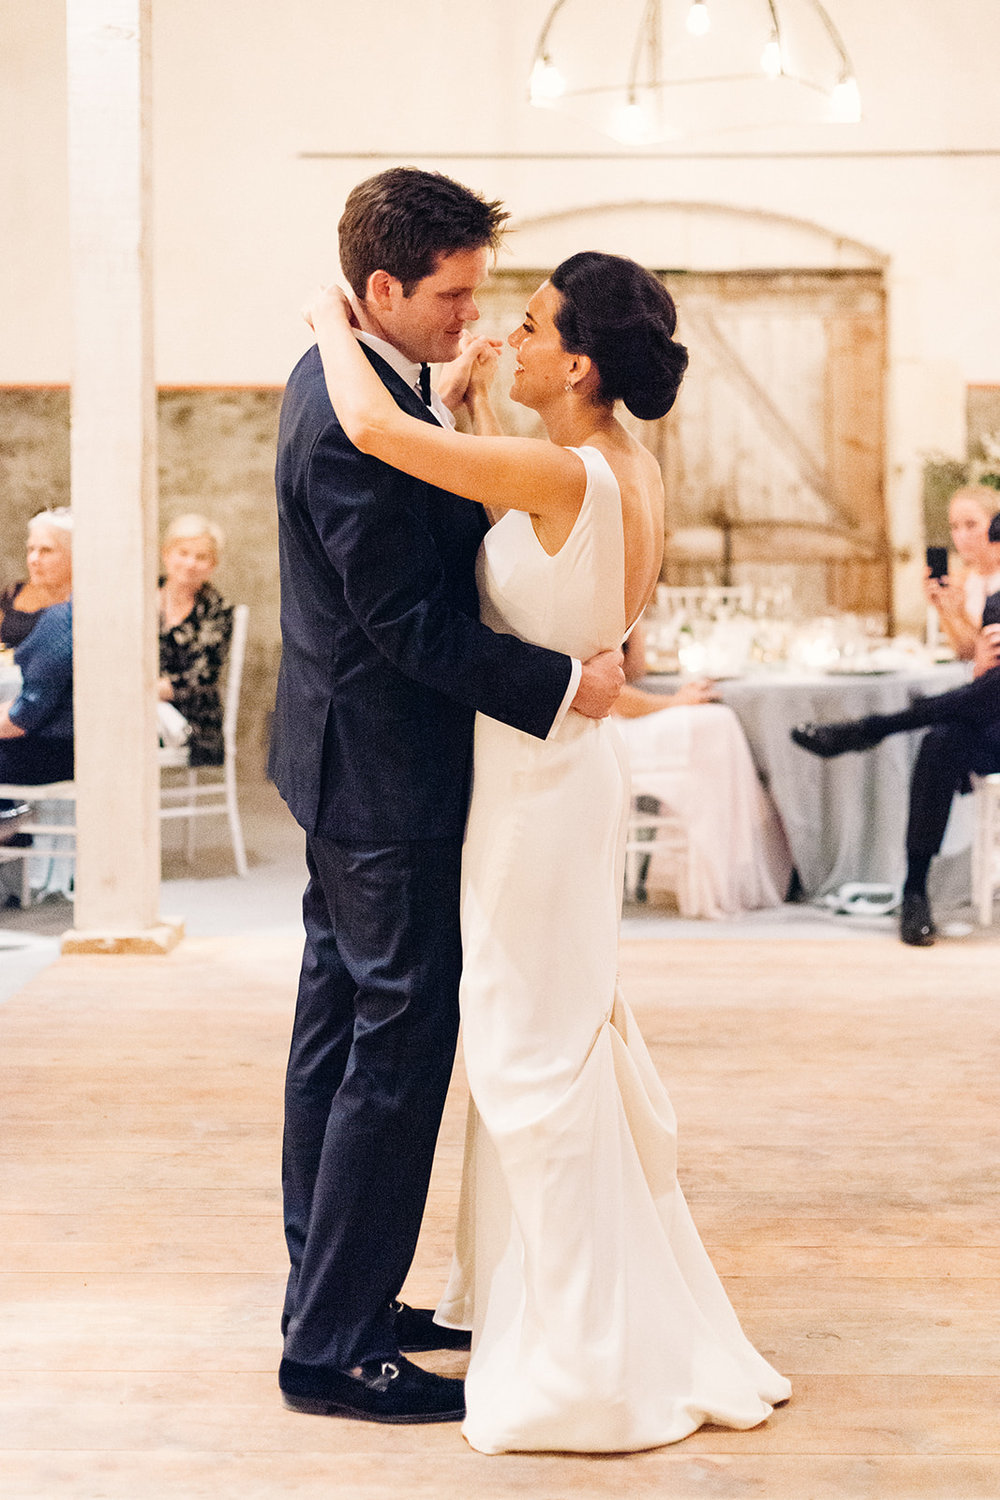 French Chateau Wedding, Events by Reagan, France Wedding, Destination Wedding Planner, Bride and Groom, First dance